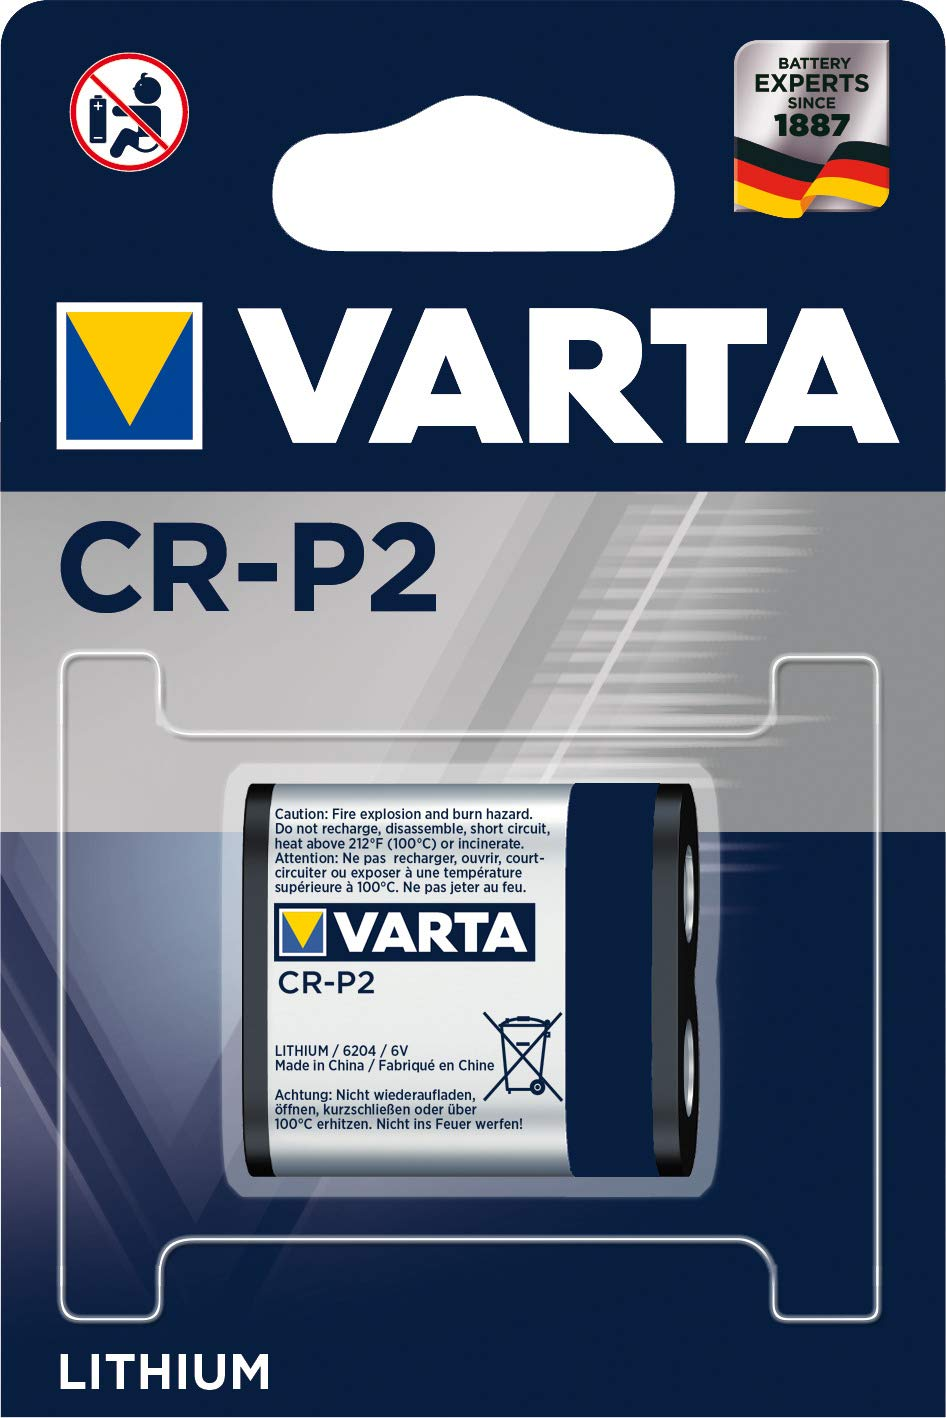 Varta CR-P2 Photo Lithium Battery Replacement